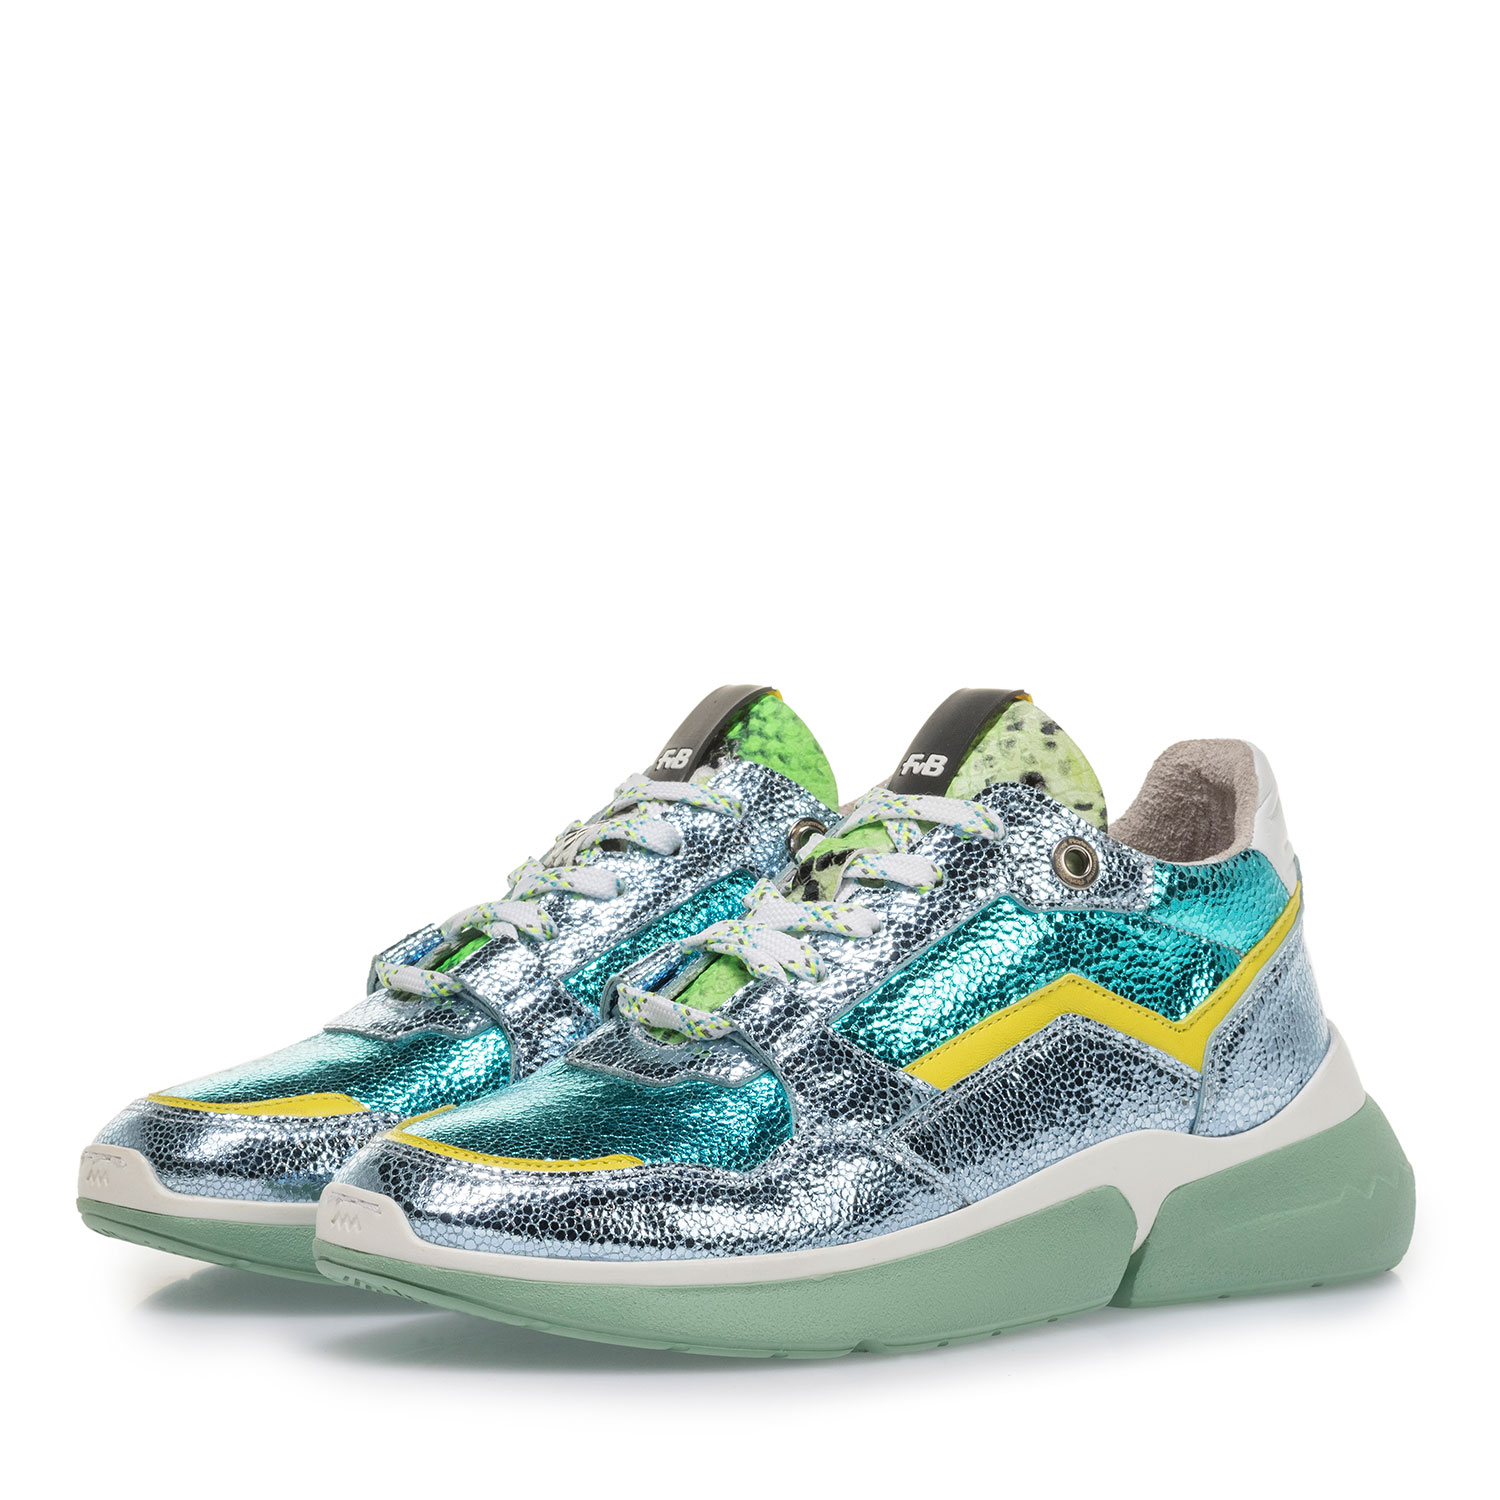 85291/15 - Light blue leather sneaker with metallic print